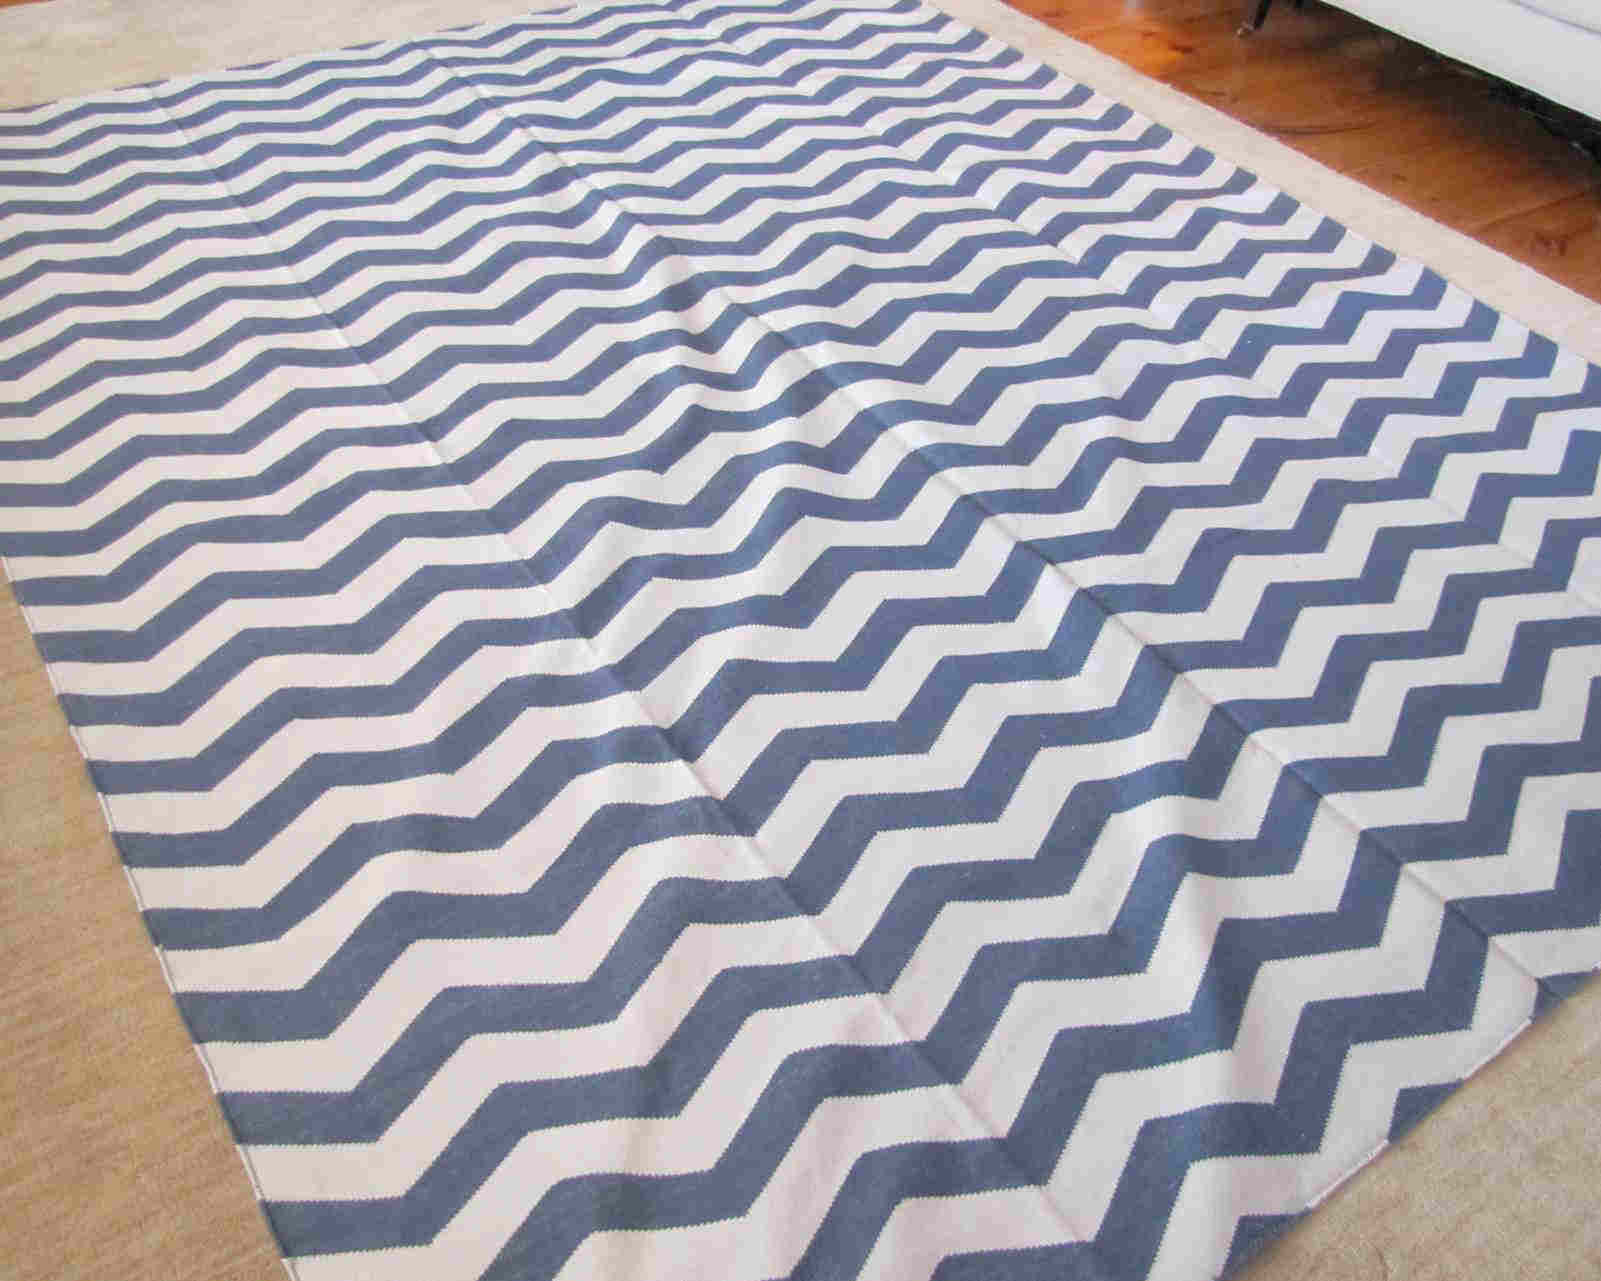 Indian Cotton Rugs Area Rug Ideas striped cotton dhurrie rugs